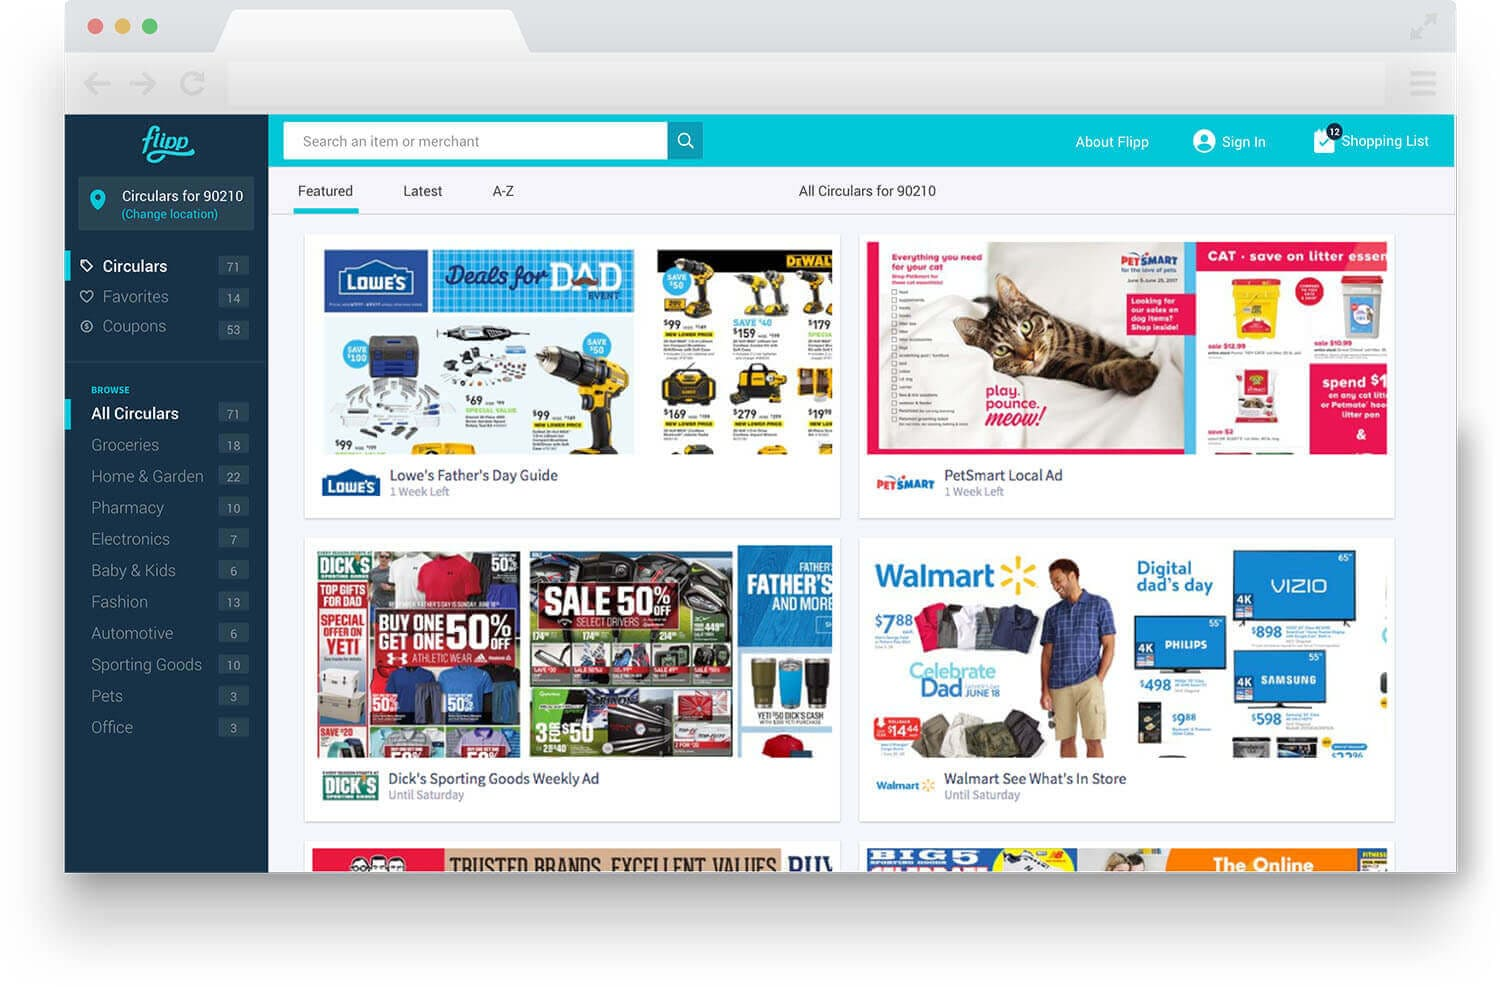 image of flipp.com flyers page